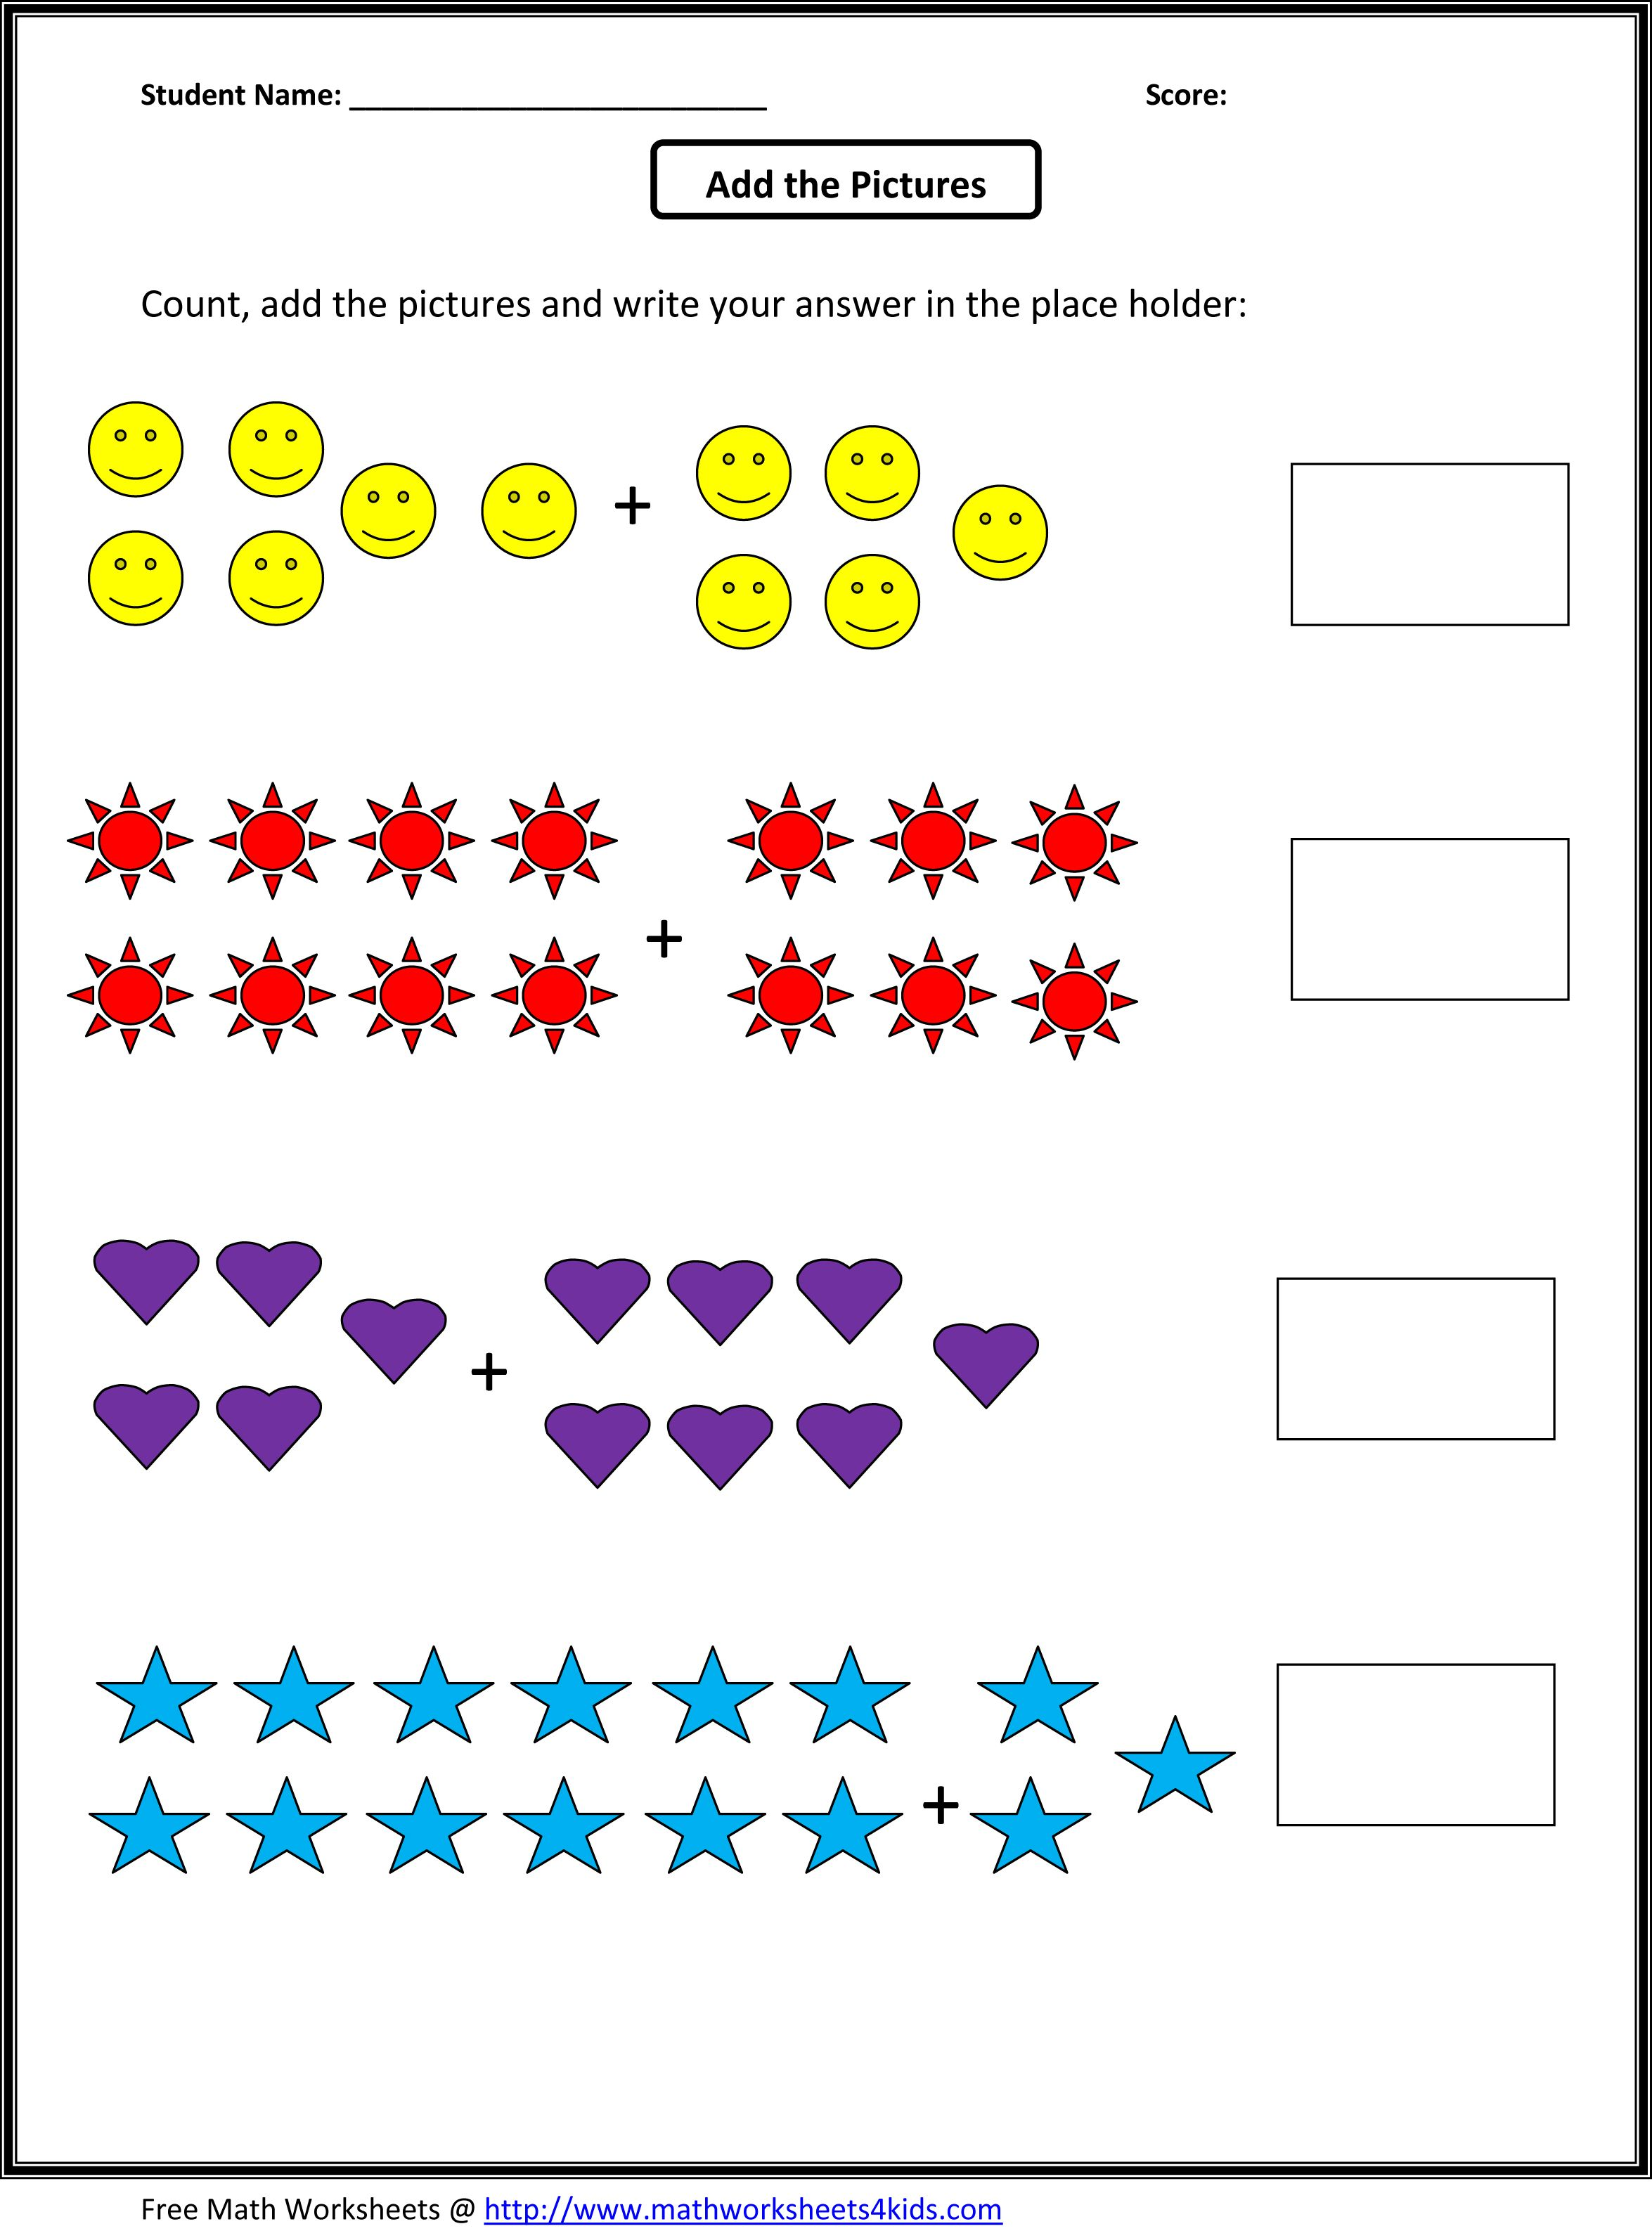 grade 1 addition math worksheets – Math Worksheet for First Grade